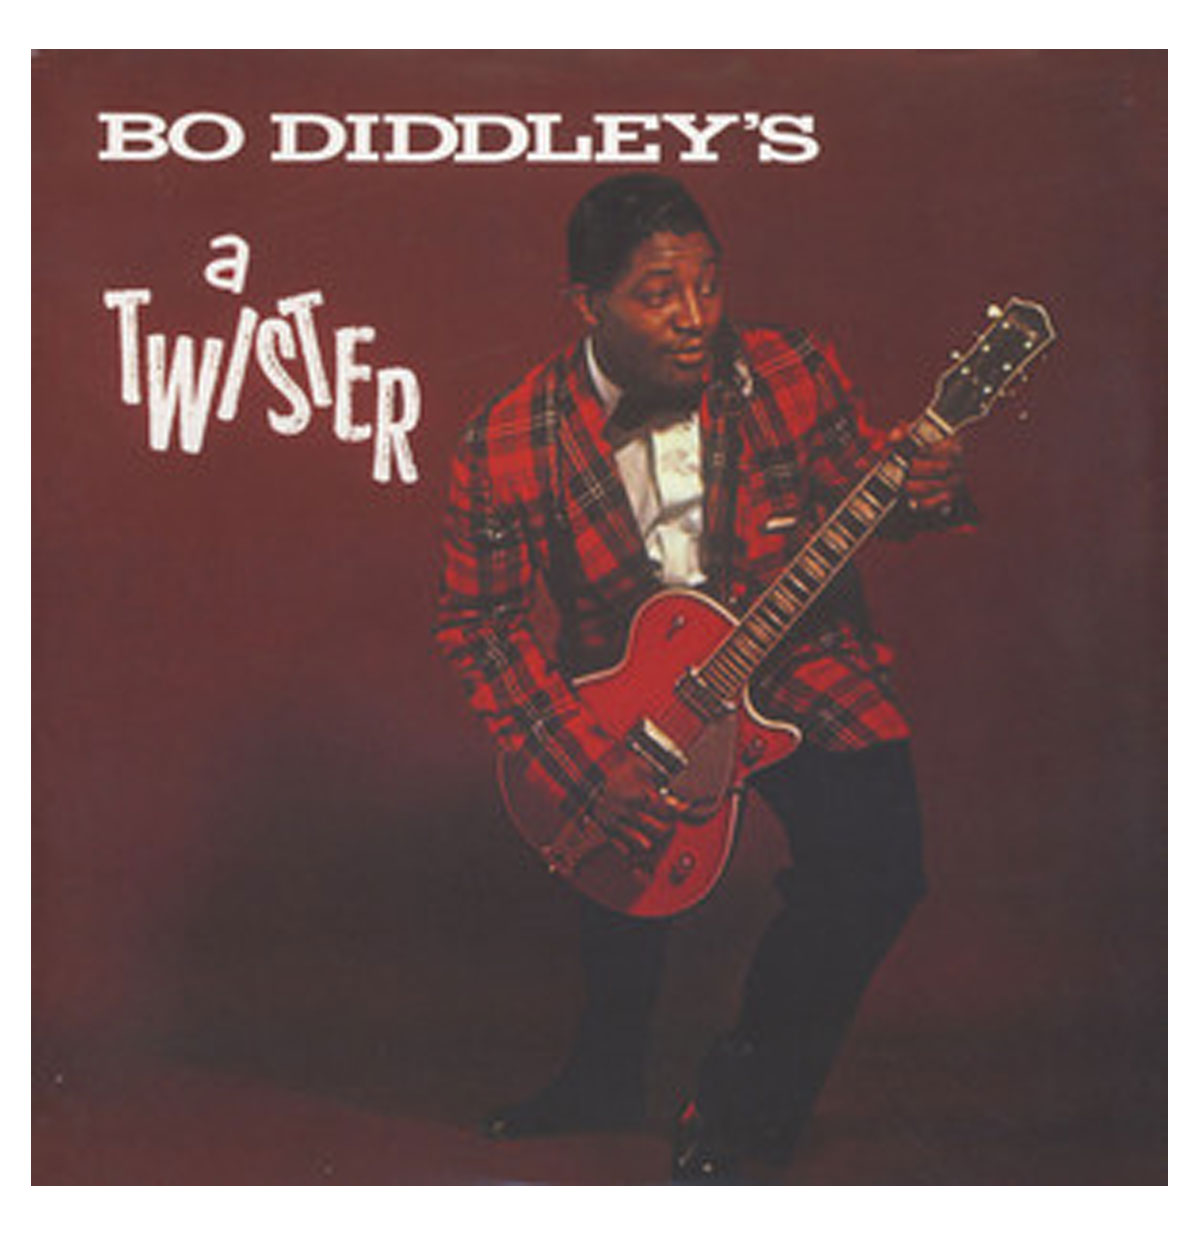 Bo Diddley - Is A Twister LP